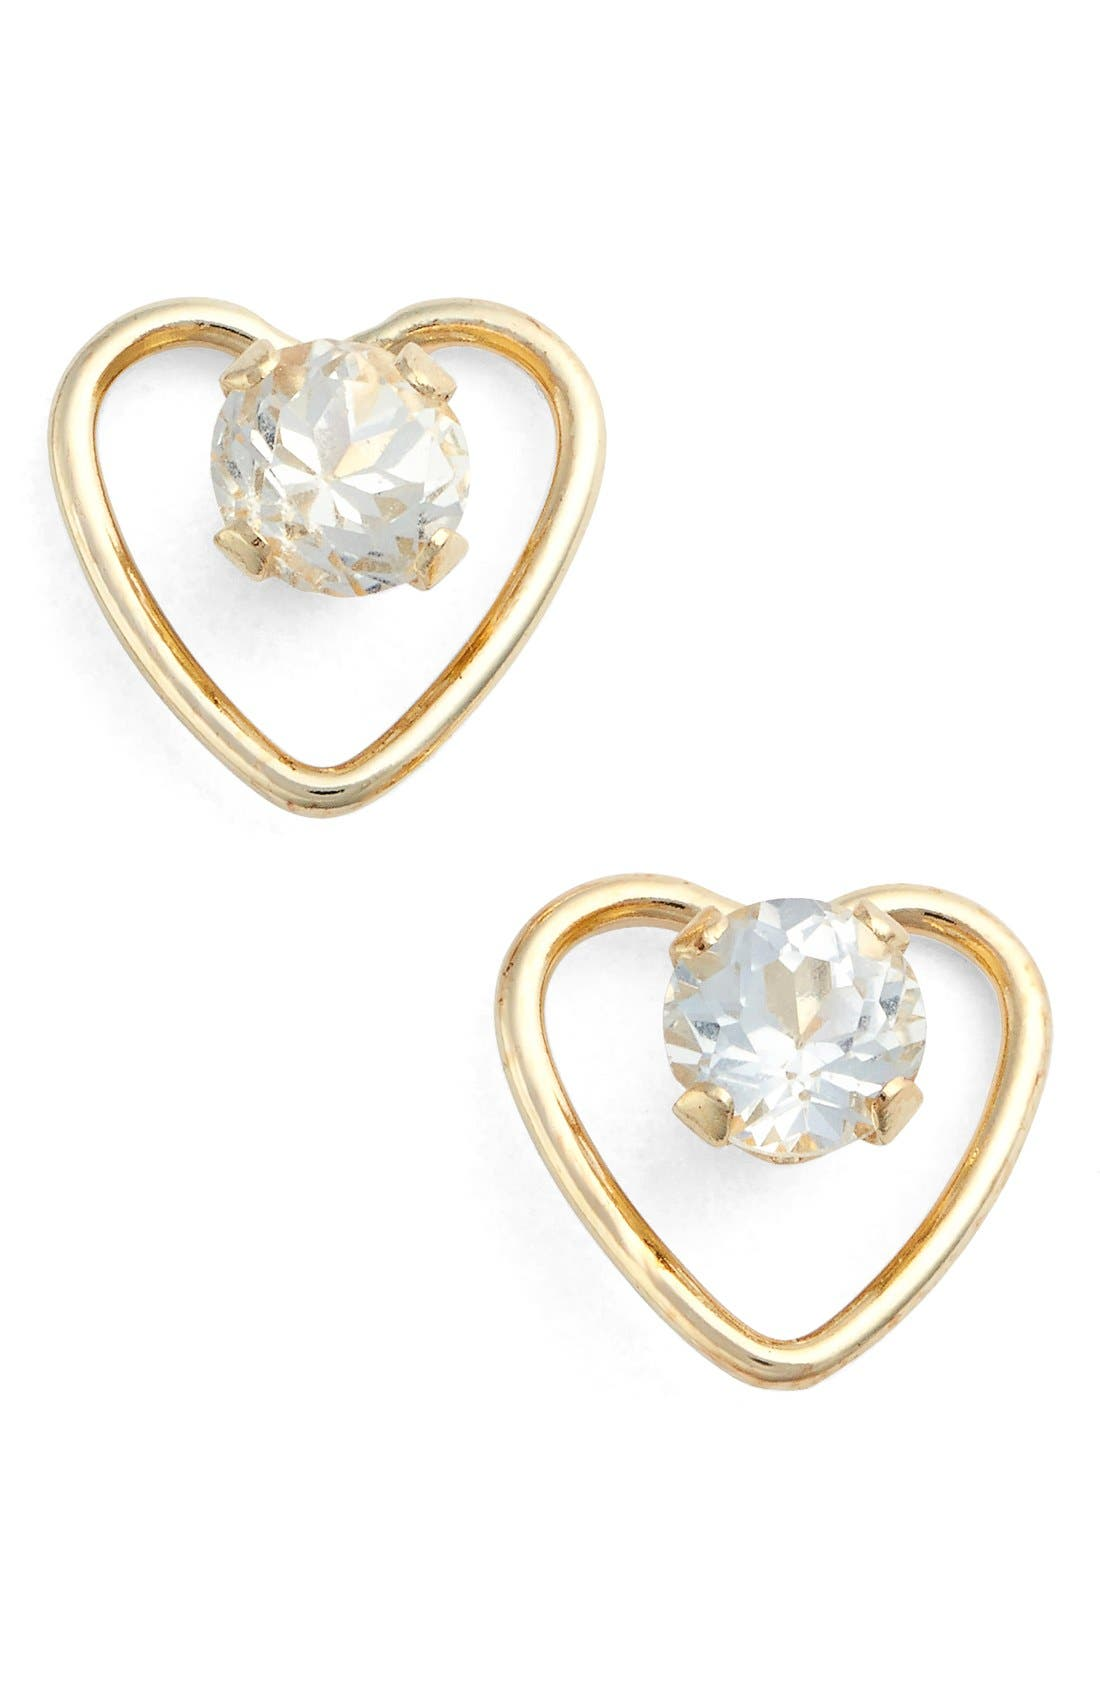 KARDEE JEWELRY Cubic Zirconia Heart Earrings